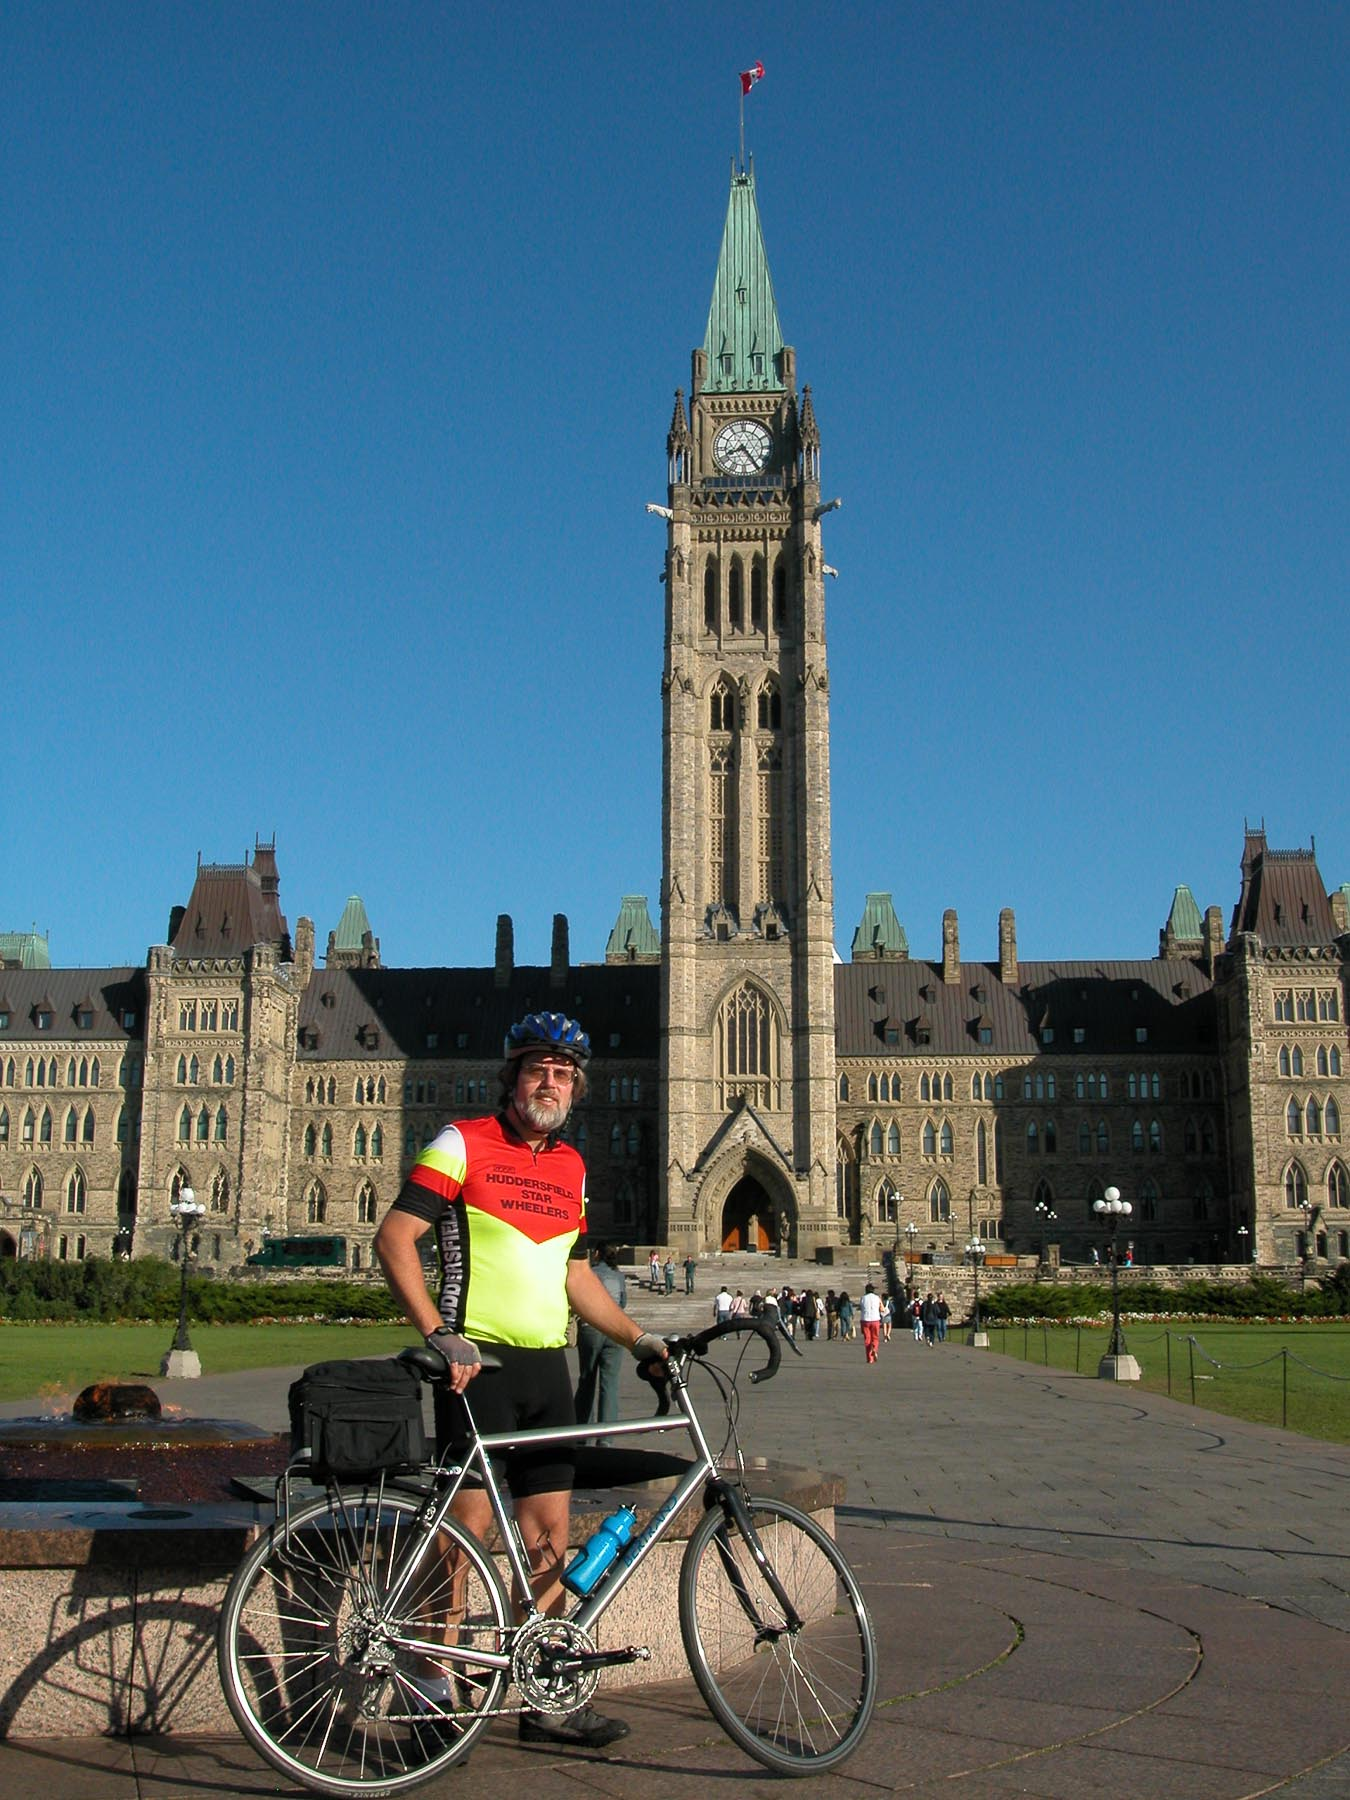 Sponsor my ride to support Parkinson's Disease Research.